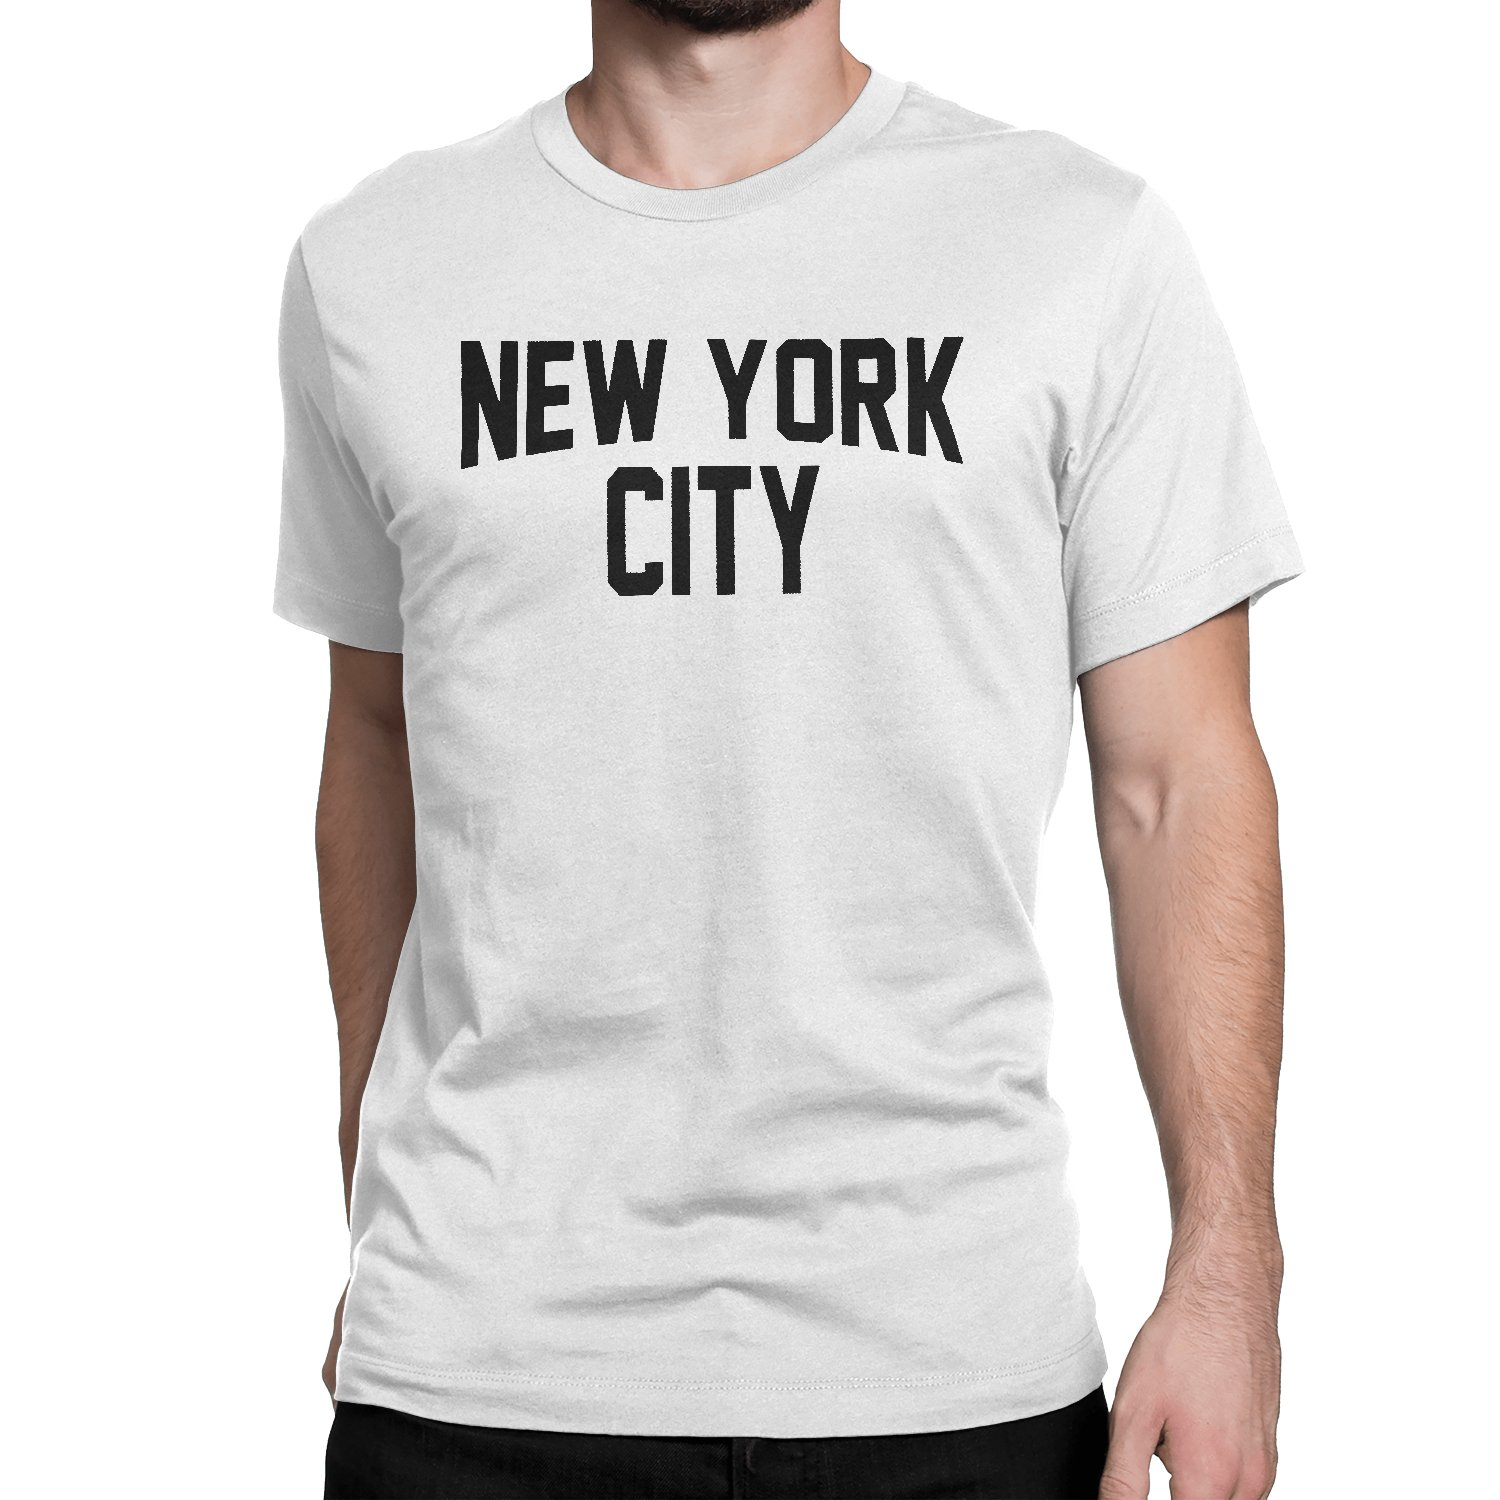 New York City Unisex T-Shirt Screenprinted White Lennon Tee Shirt